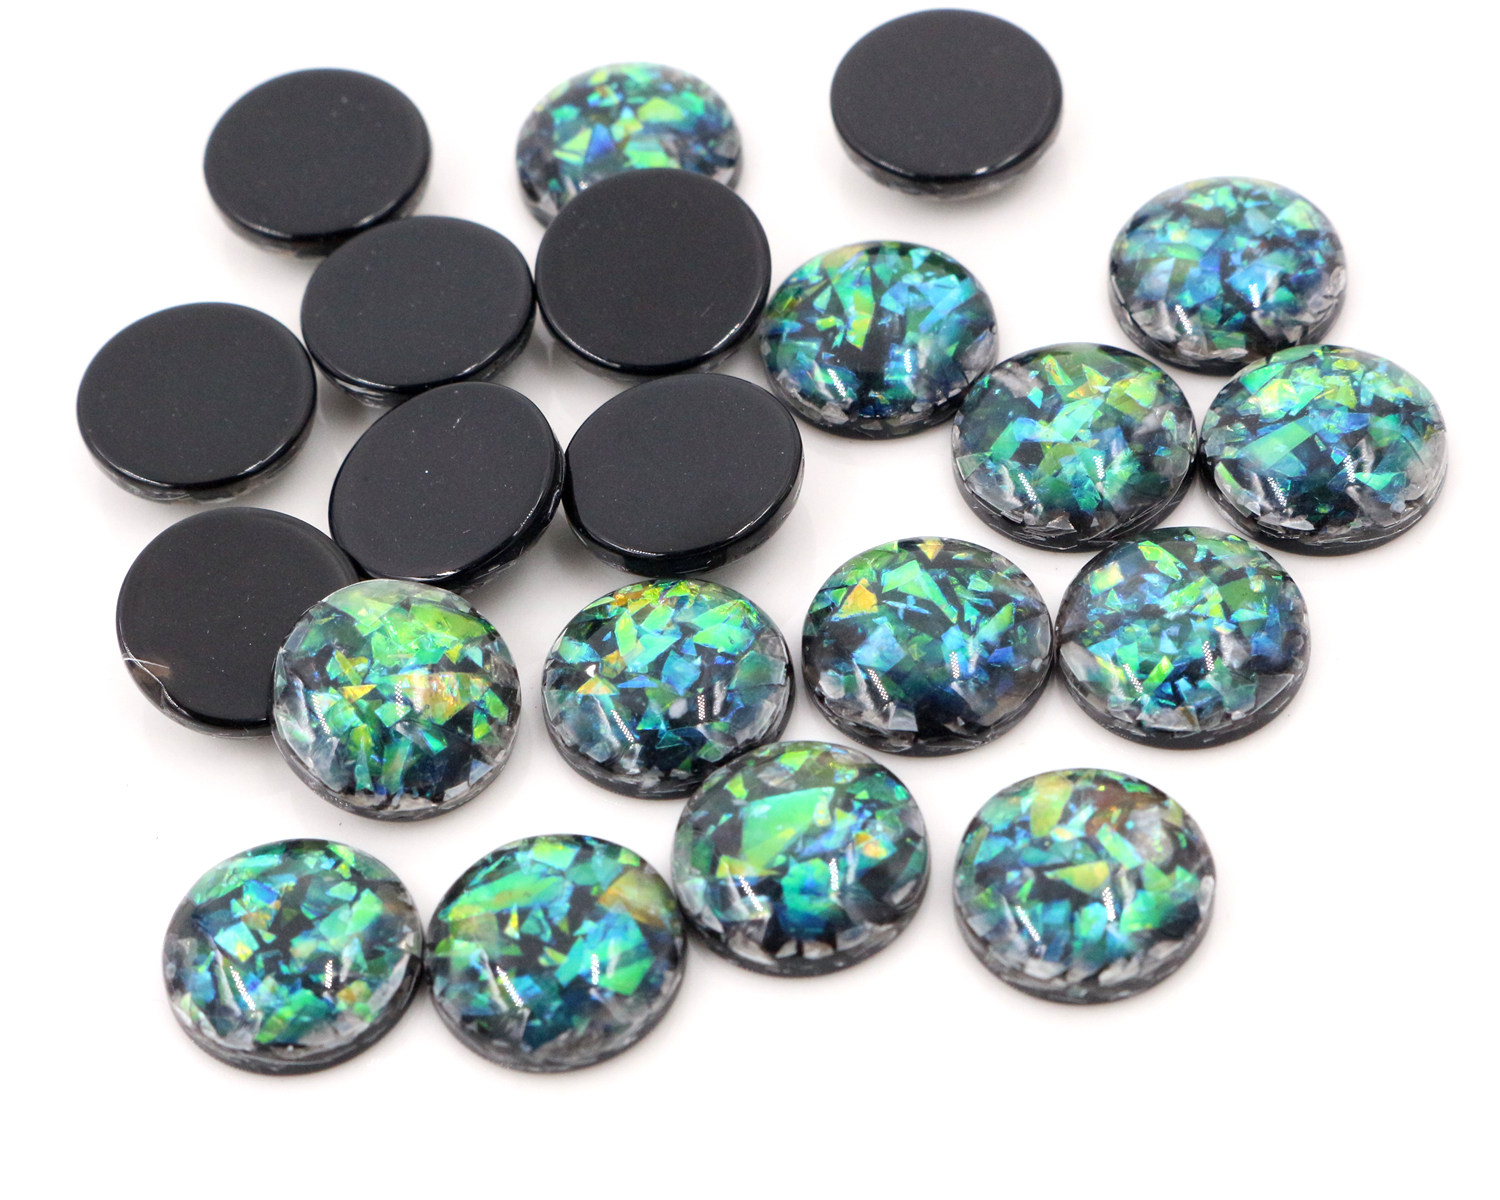 New Fashion 40pcs 12mm Black Colors Built-in metal foil Flat back Resin Cabochons Cameo-V6-23New Fashion 40pcs 12mm Black Colors Built-in metal foil Flat back Resin Cabochons Cameo-V6-23